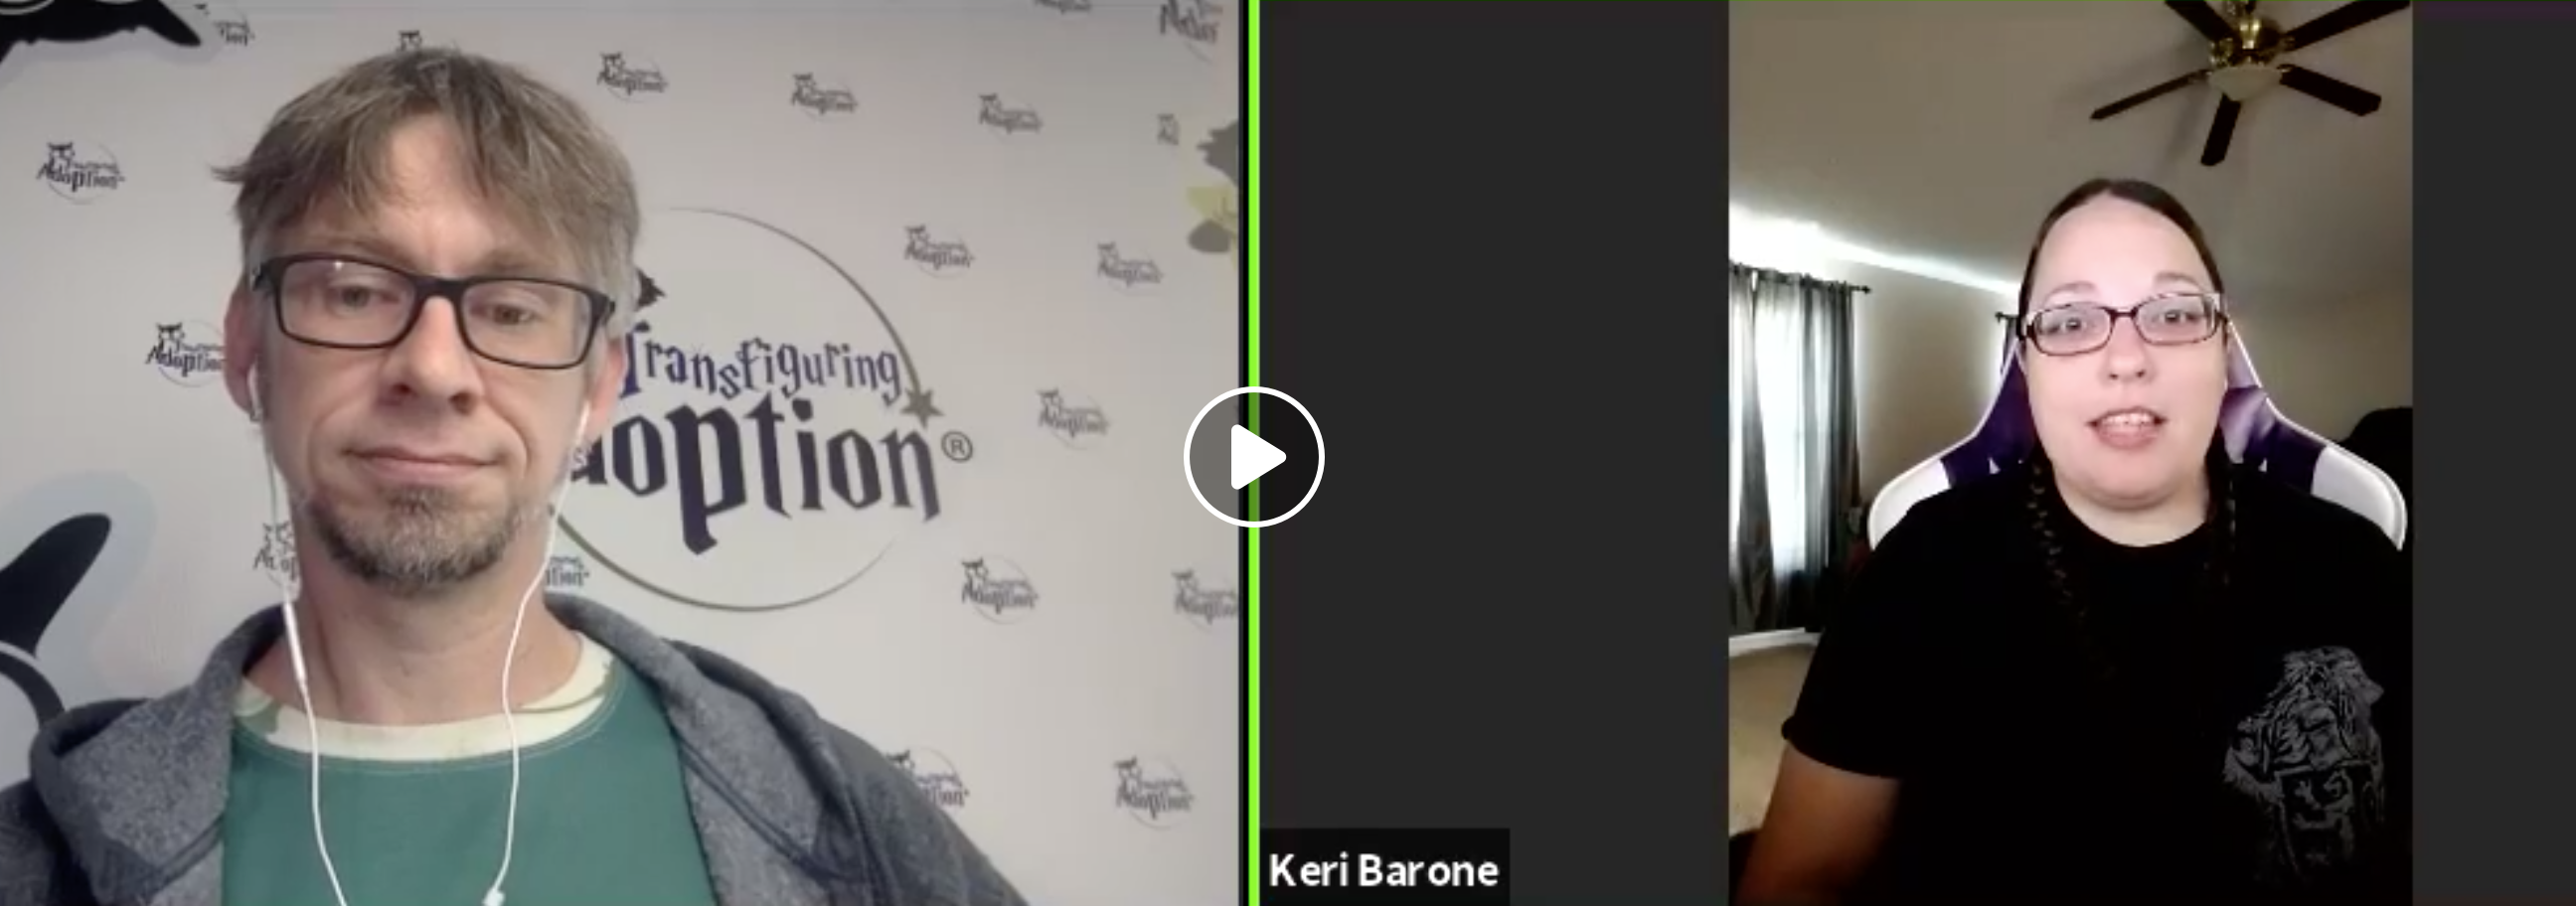 keri-barone-animal-crossing-video-game-review-foster-care-adoption